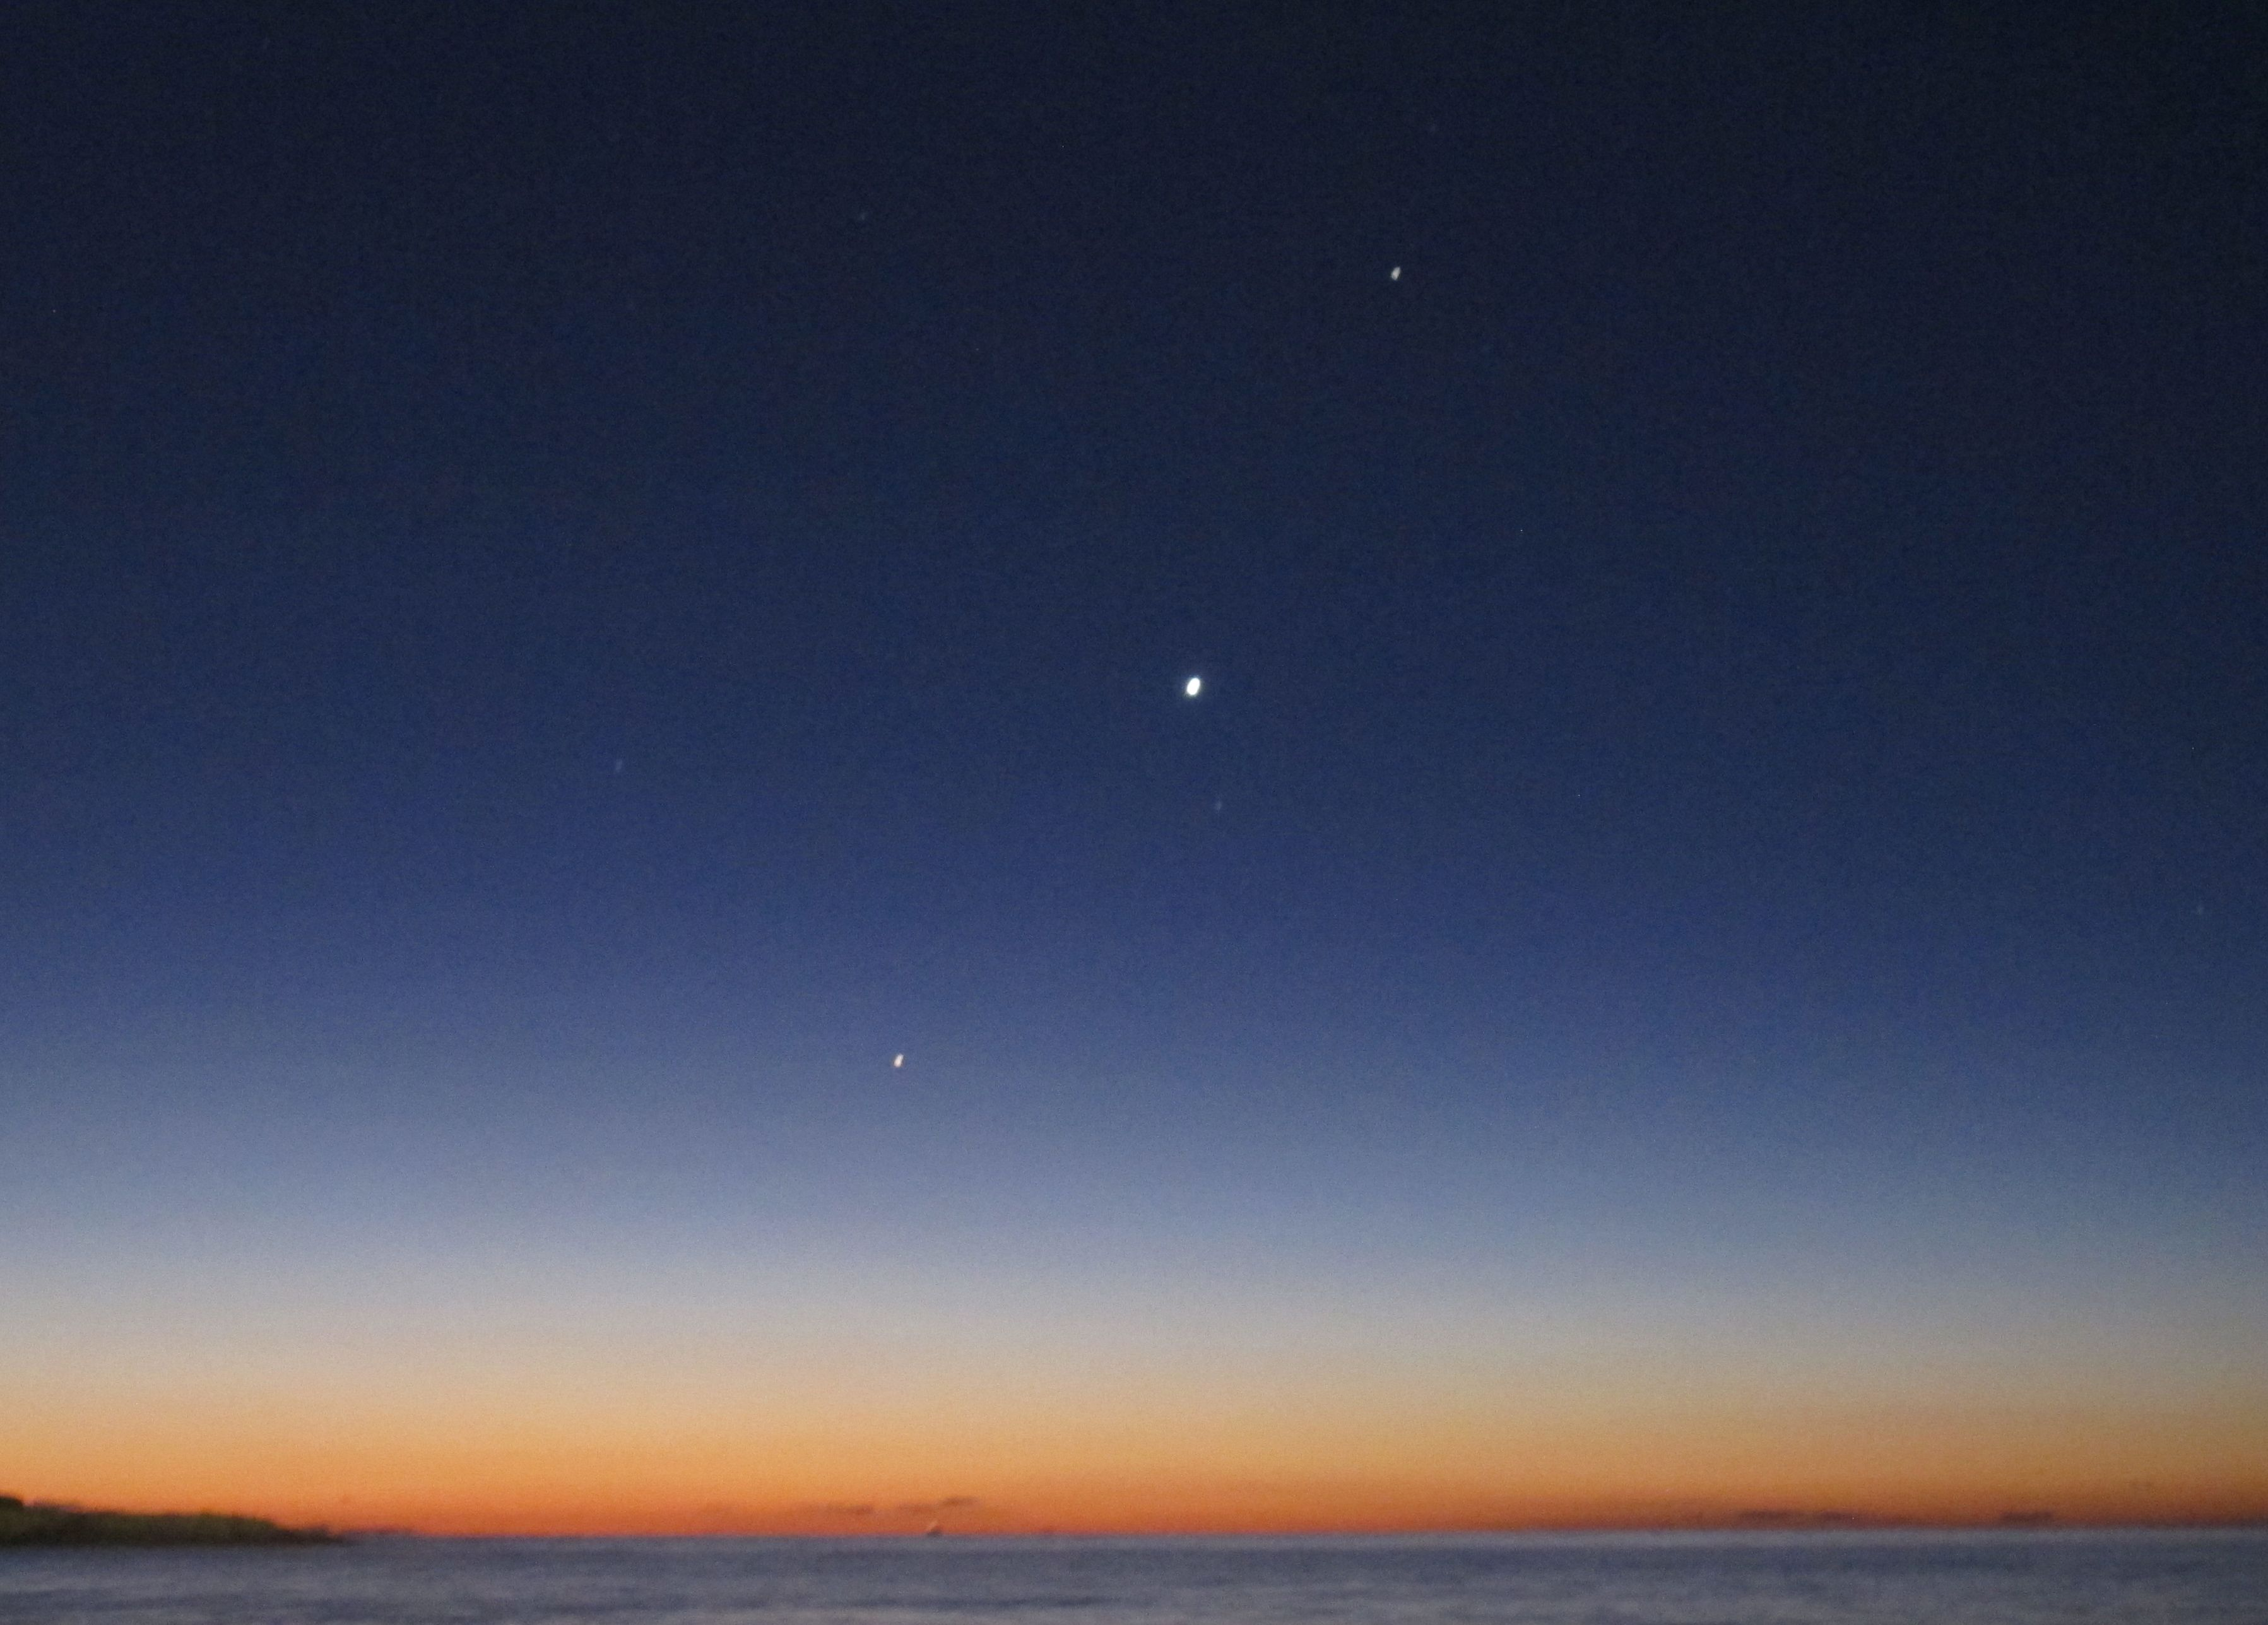 planets lining up in december - photo #16